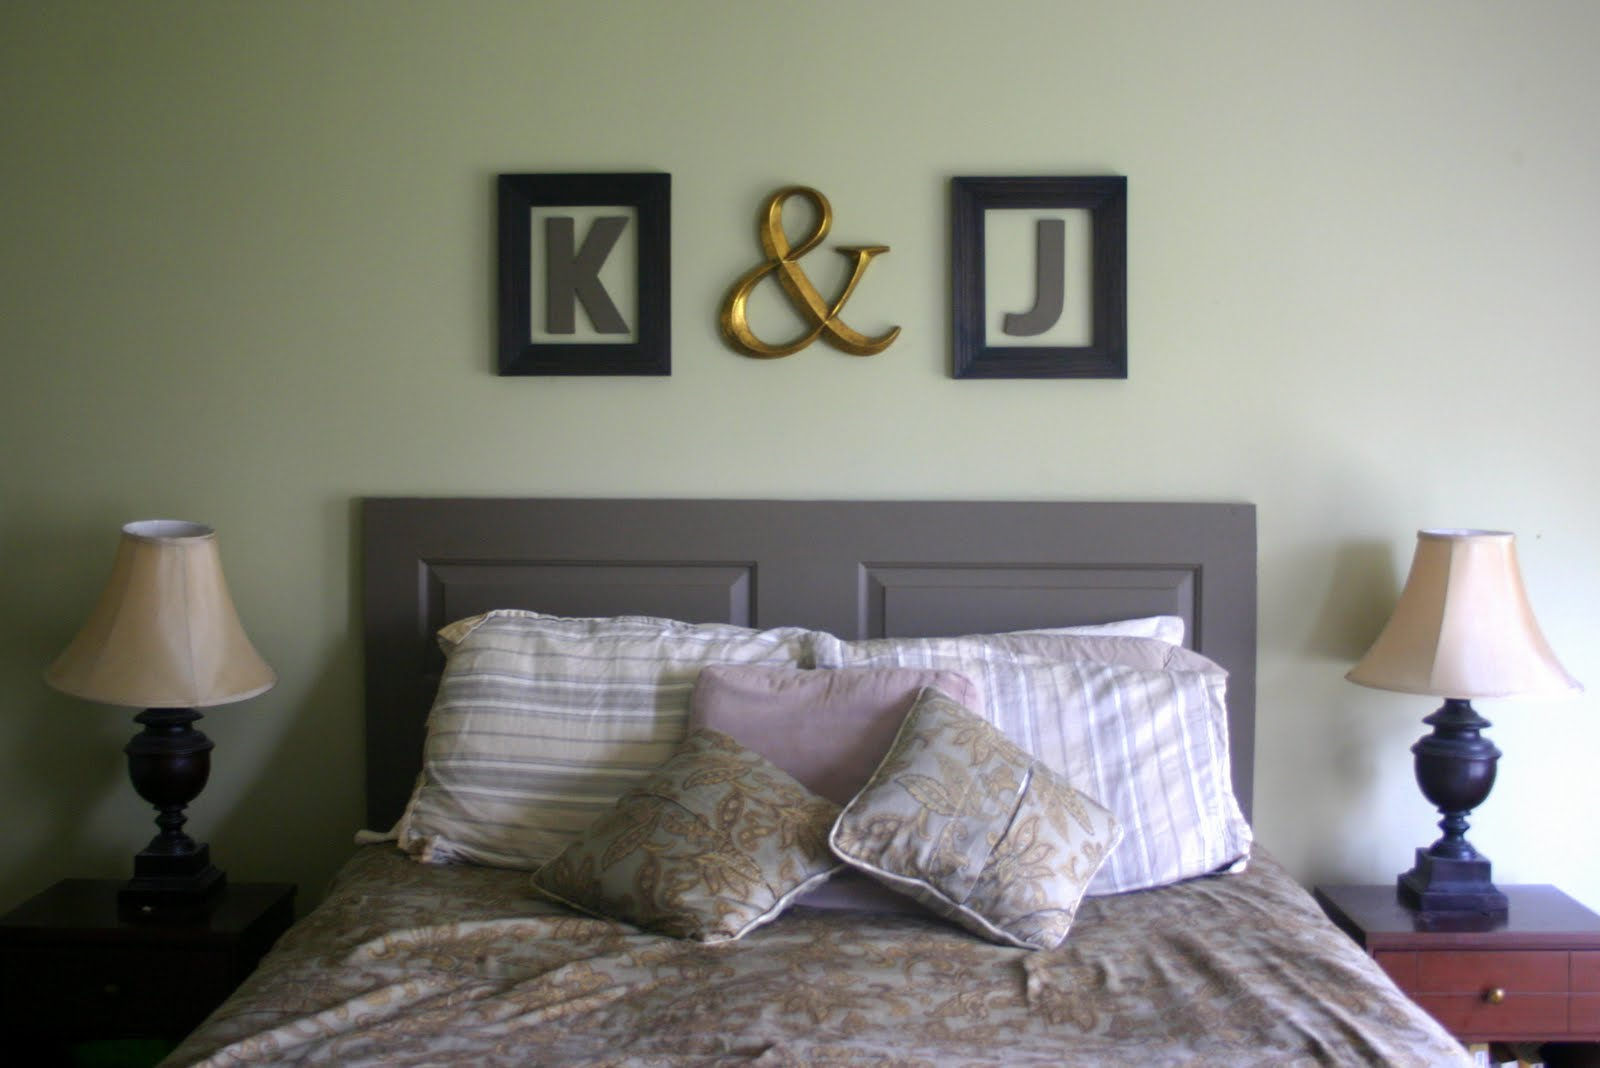 diy-headboard-ideas-10